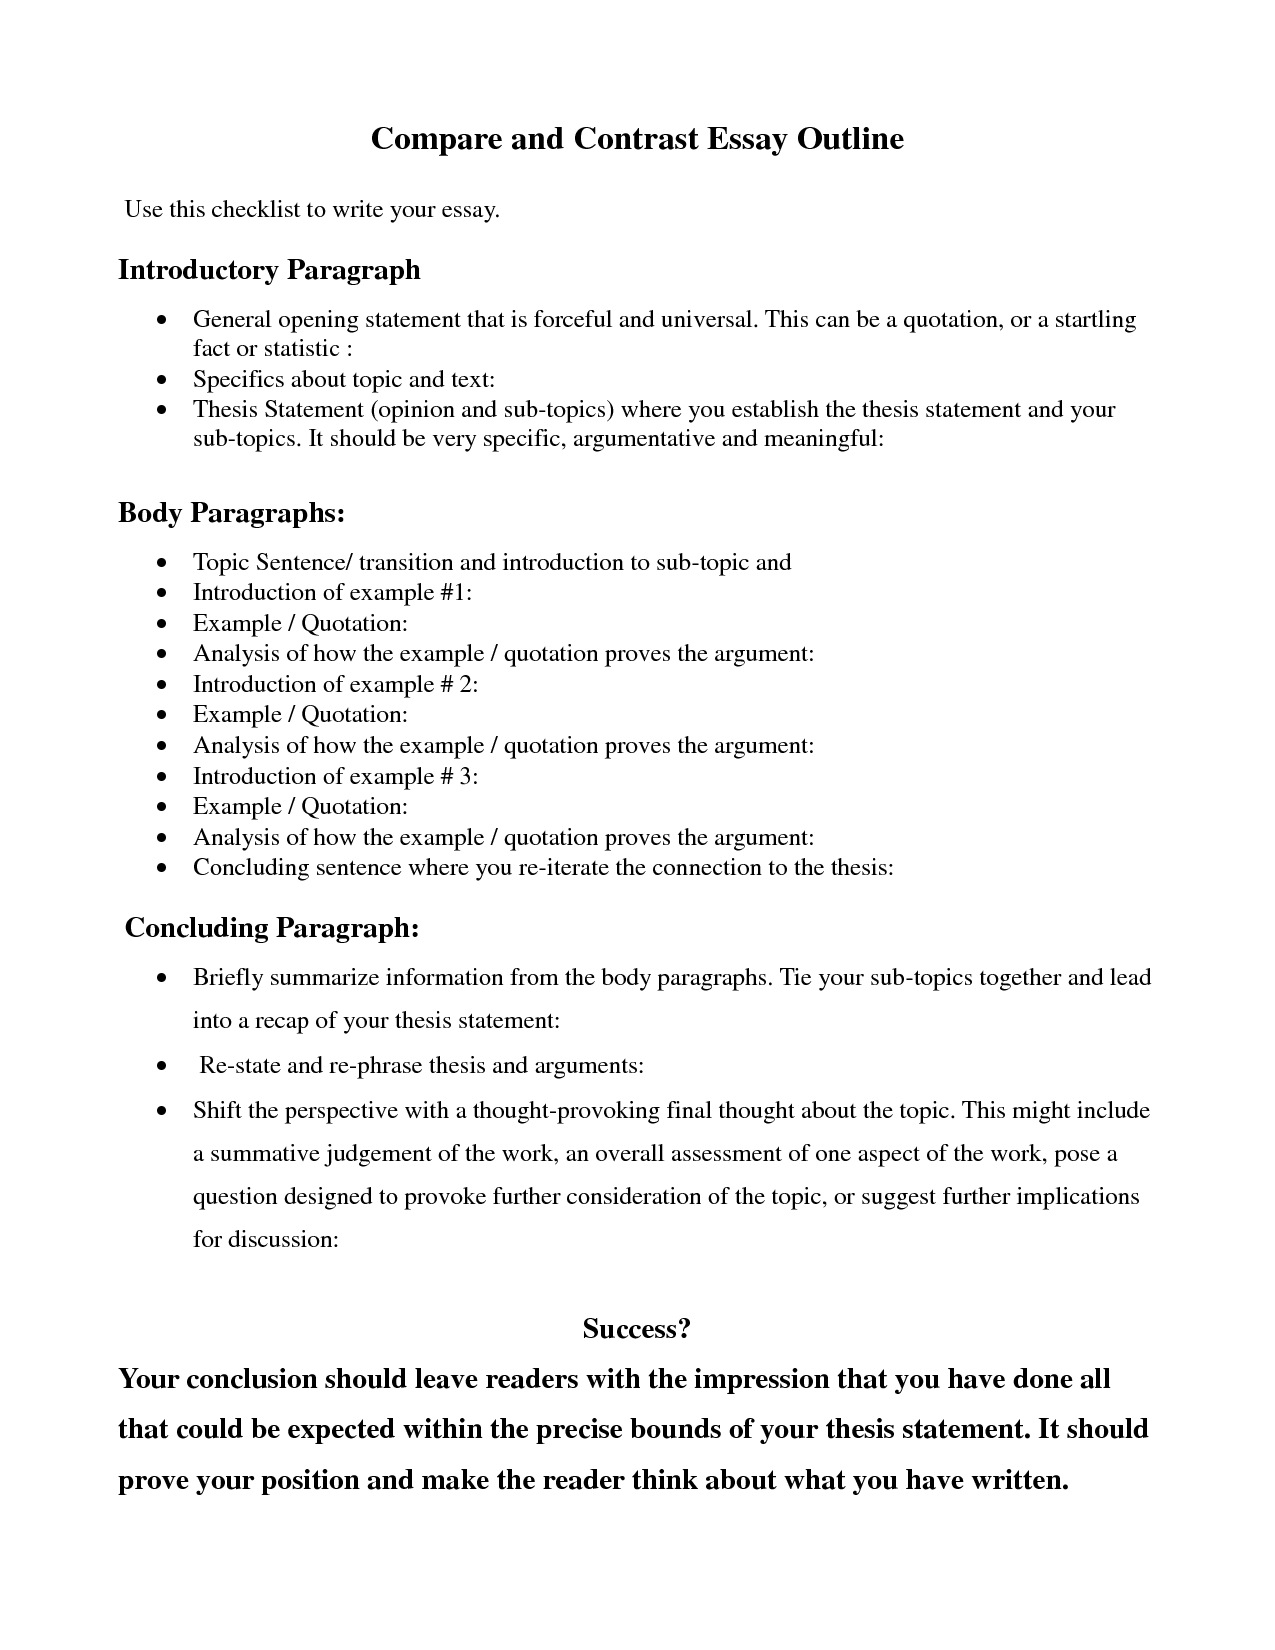 009 Essay Example How To Conclude Compare And Fantastic A Contrast Start Writing Comparison Write Begin Full